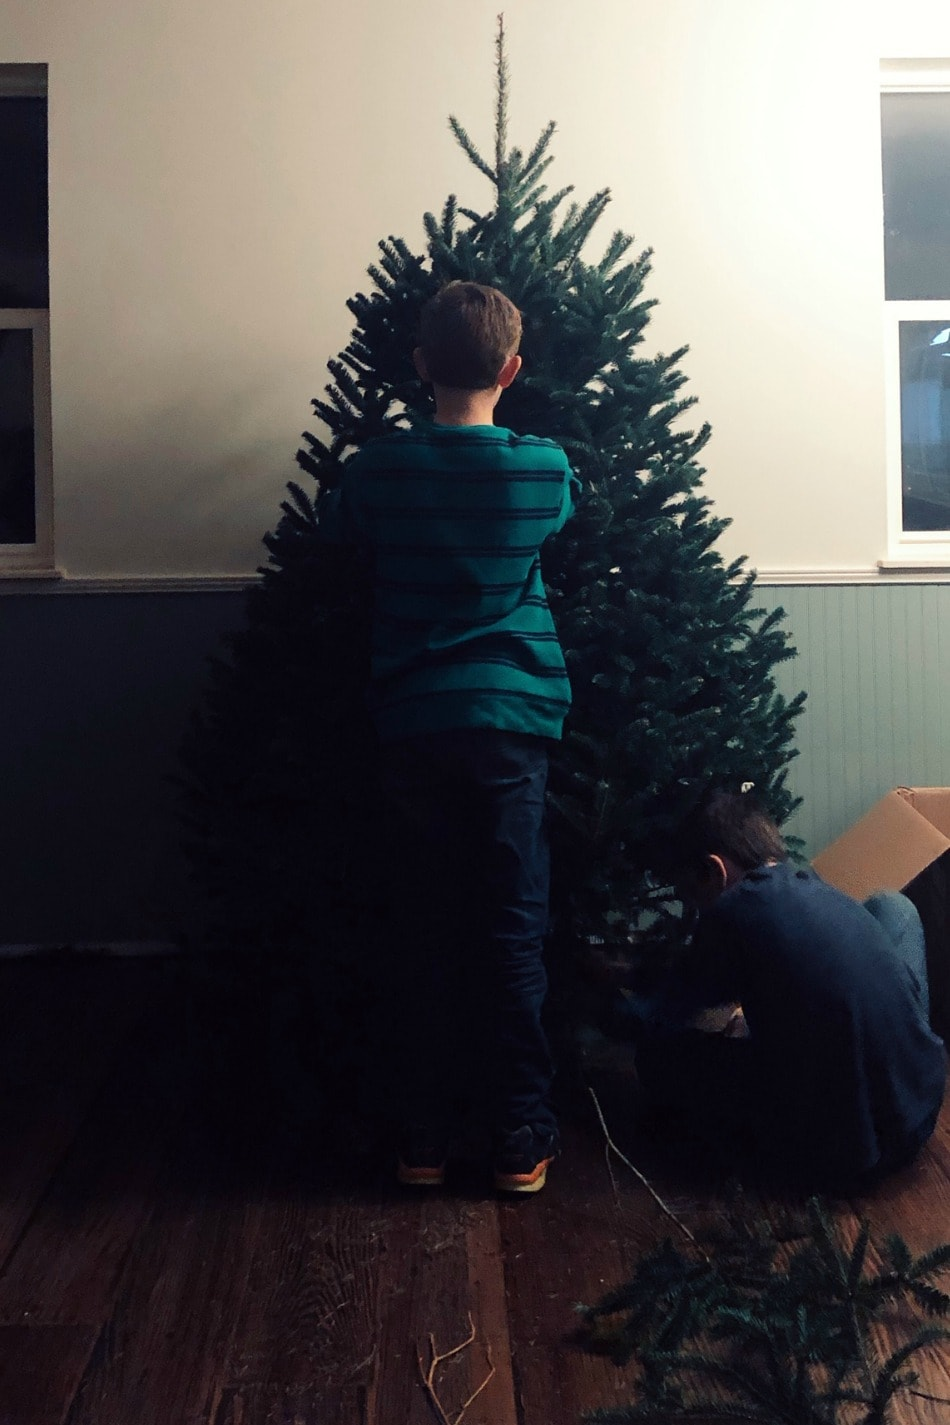 Life Lately: Decking The Halls | Growing Up Herbal | While it feels strange decking the halls of our half-finished home, I'm pushing past my feelings to bring warmth and tradition to our new home this season.